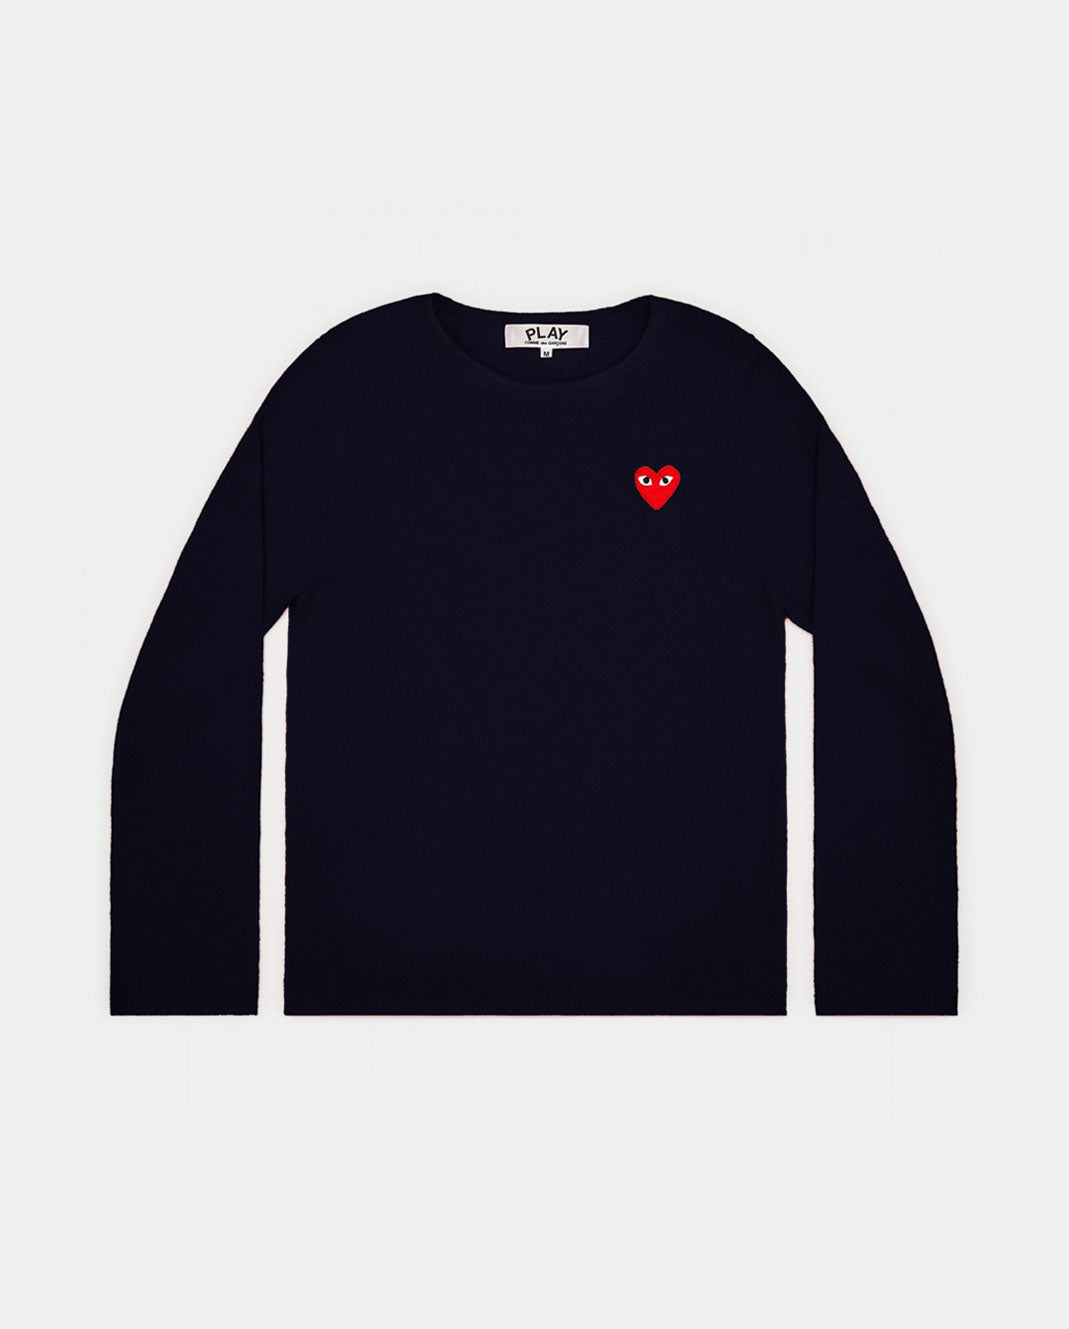 N067 CREW NECK JUMPER / NAVY